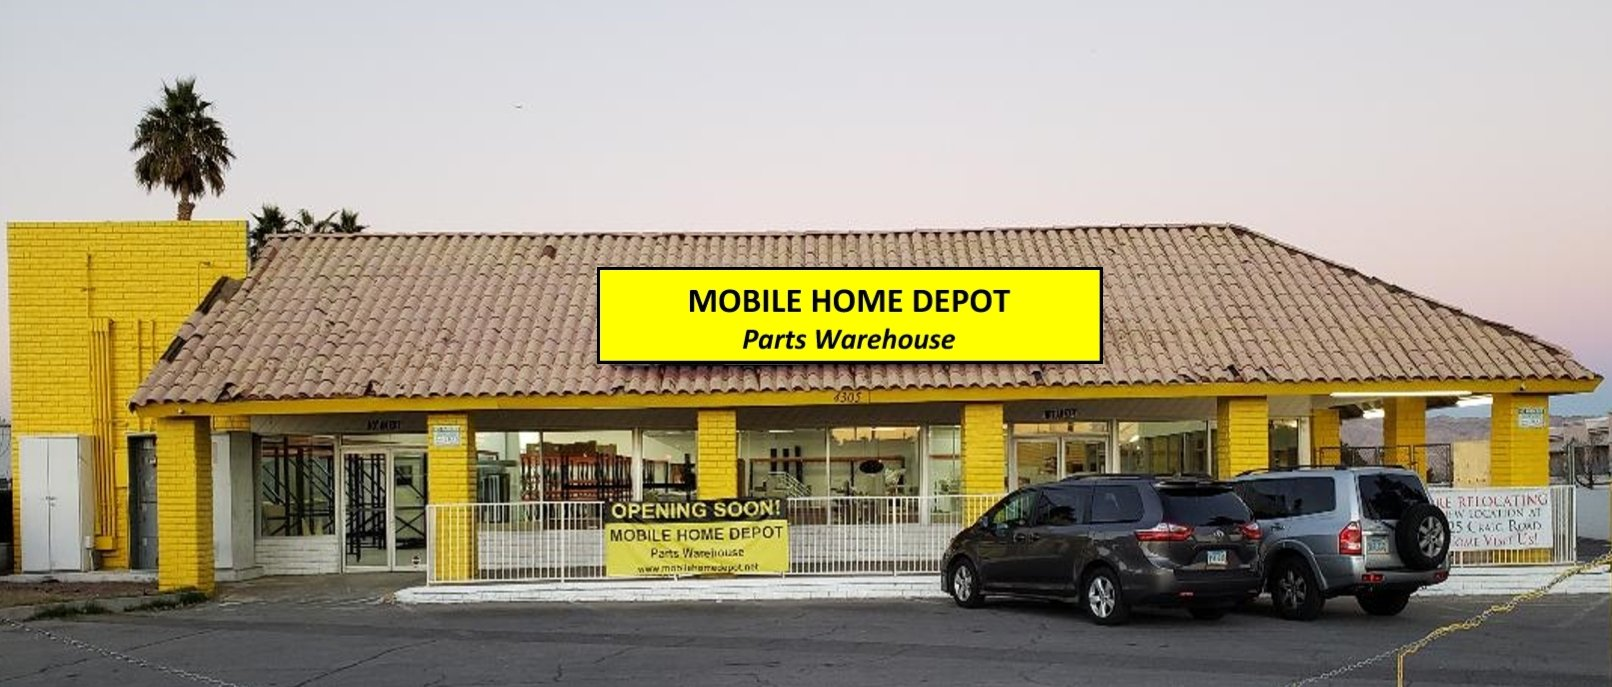 Mobile Home Parts Store   Florida & Arizona   Mobile Home Depot on honda generators home depot, carport canopy home depot, mobile home doors home depot, mobile home accessories catalog, mobile home tubs and surrounds,